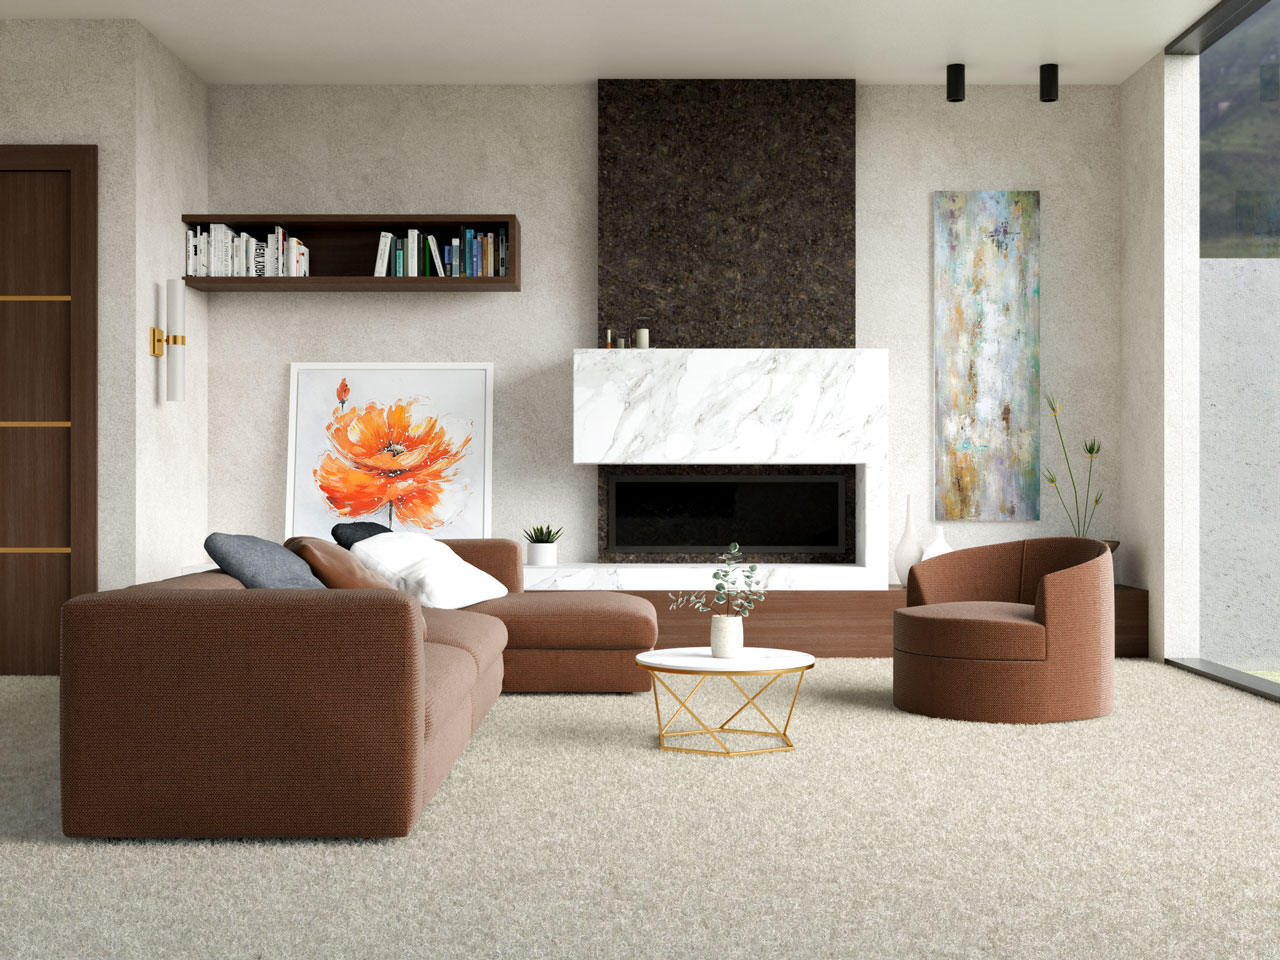 Living room with chocolate brown furniture and beige carpet